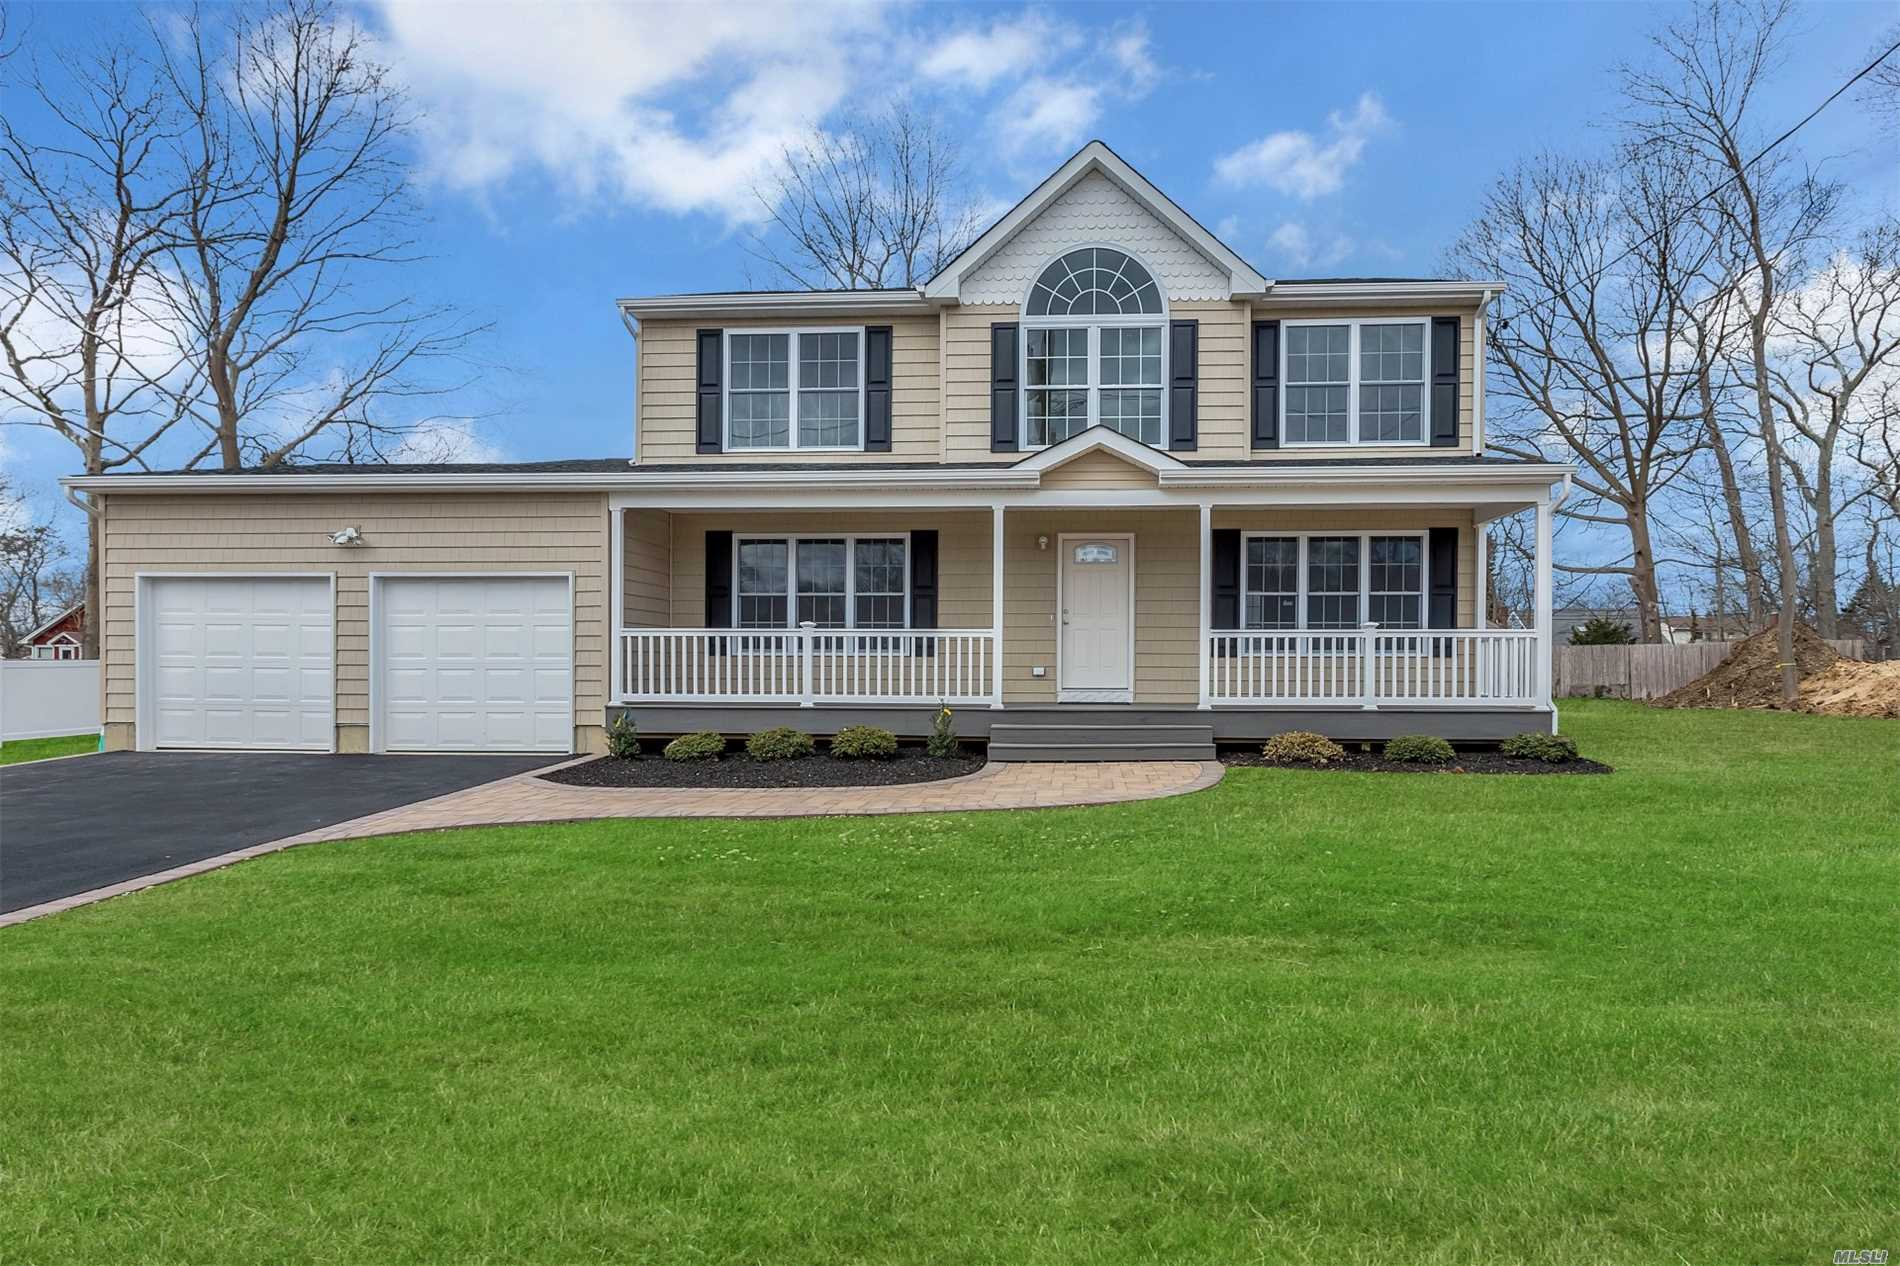 This 4 Bedroom, 2171 Sq Ft Colonial Offers A Covered Proch, Full Basement-(1162 Sq Ft.), Eat Iin Kitchen, Din.Rm, Great Rm. 3 1/4 In. Oak Flooring On The Entire First Floor, Oak Treds, Oak Landing On 2nd Floor, Crown Molding On The Entire First Floor, S/S Applliances, Choice Of Granite, Choice Of Cabinets, Choice Of Tiles, Choice Of Carpet In Bedrooms, Master Suite W/ A Full Bathroom!!! 2 Car Garage(412 Sq.Ft.)(Not Part Of Liv. Sq Ft. )Photos Of A Previously Built Home..